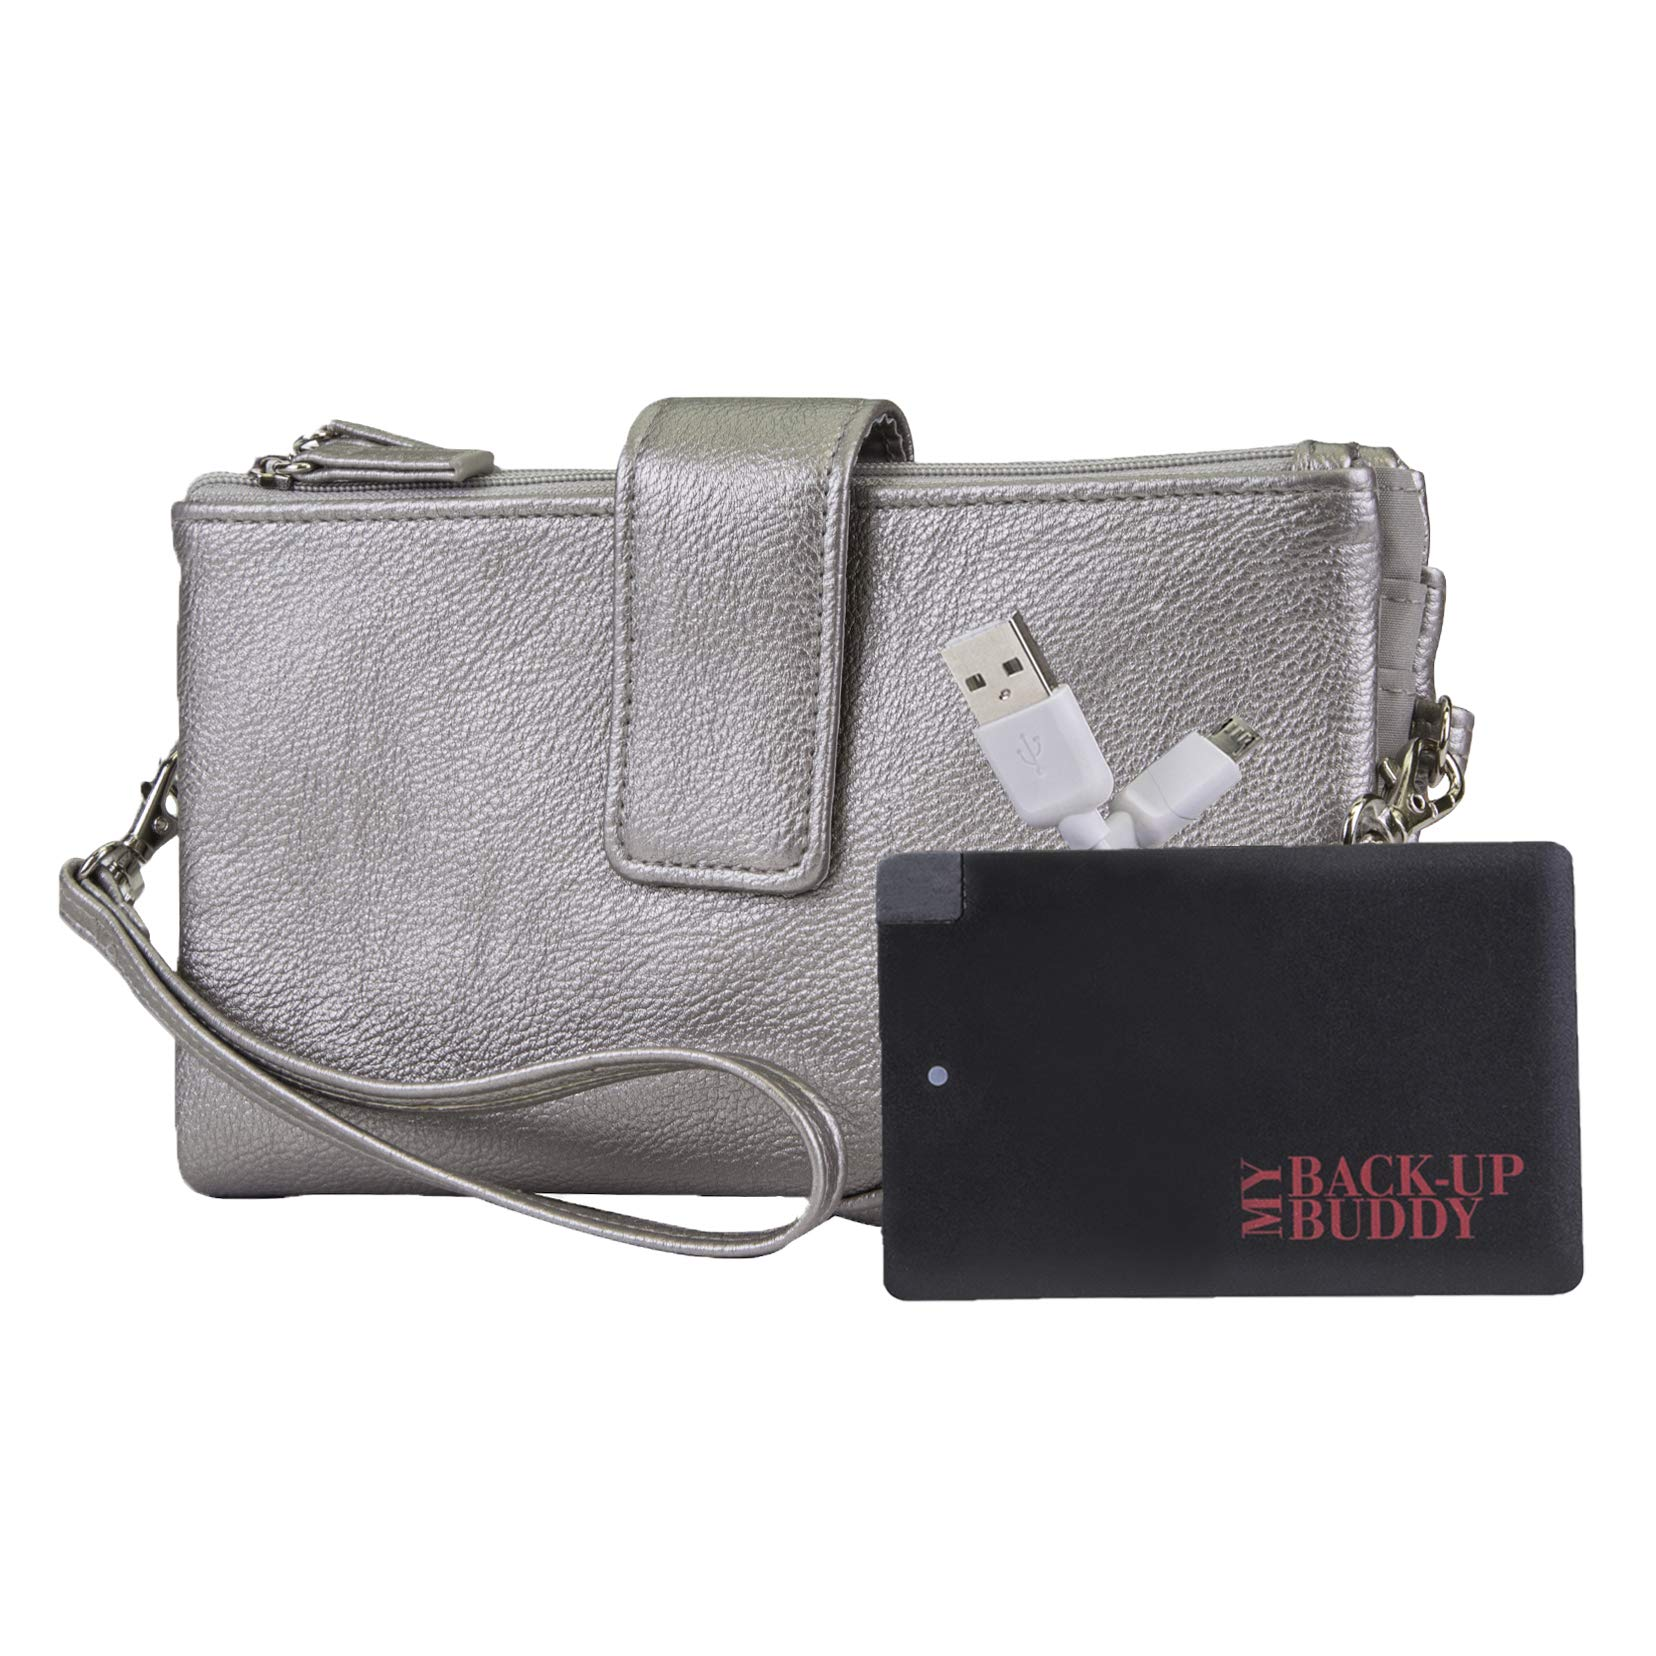 Mundi Power Pro Vegan Leather Womens RFID Crossbody Wallet With Included Portable Phone Charger (Pewter)